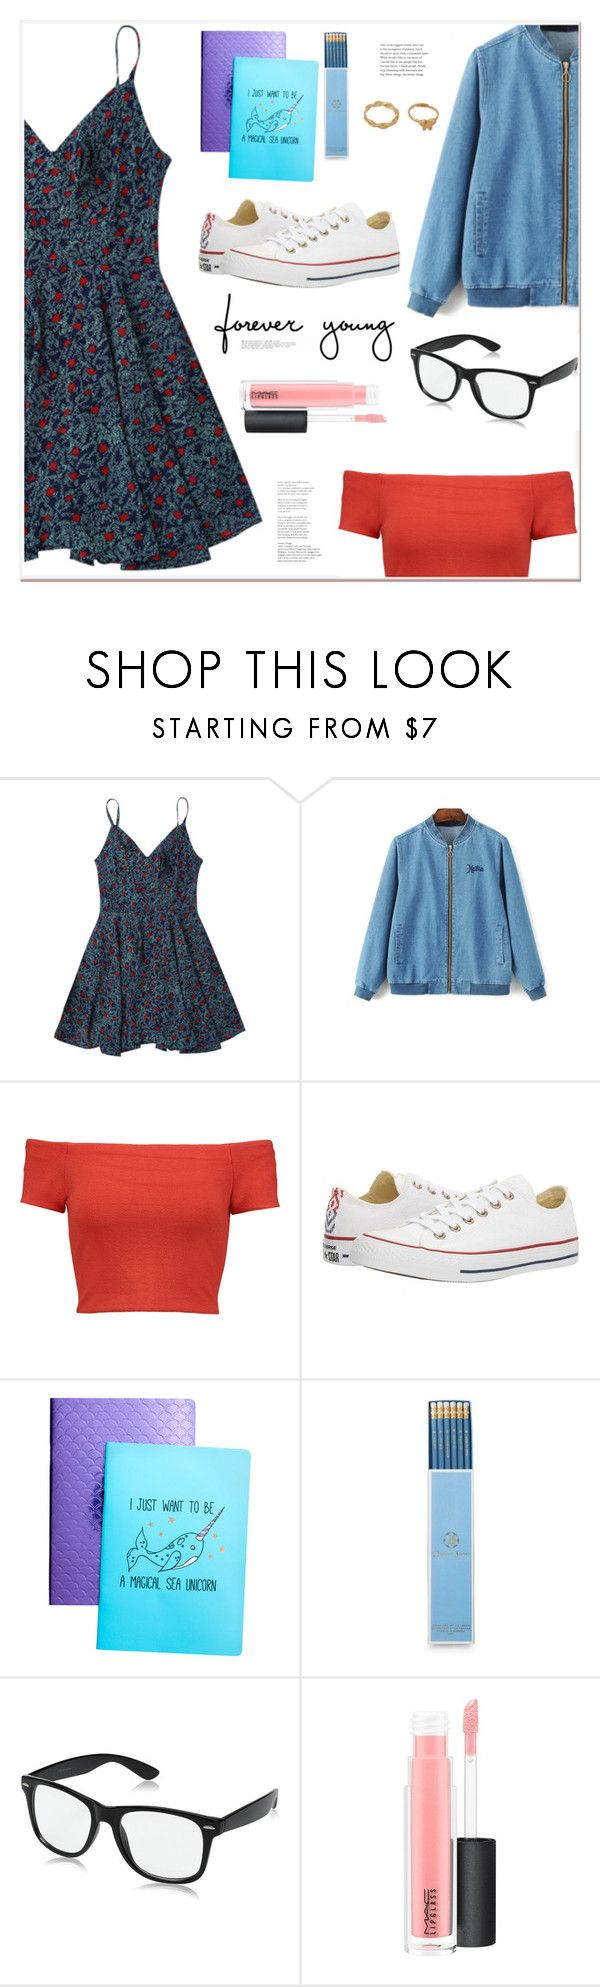 """Forever young"" by mycherryblossom ❤ liked on Polyvore featuring Alice + Olivia, Converse, Draper James and MAC Cosmetics"